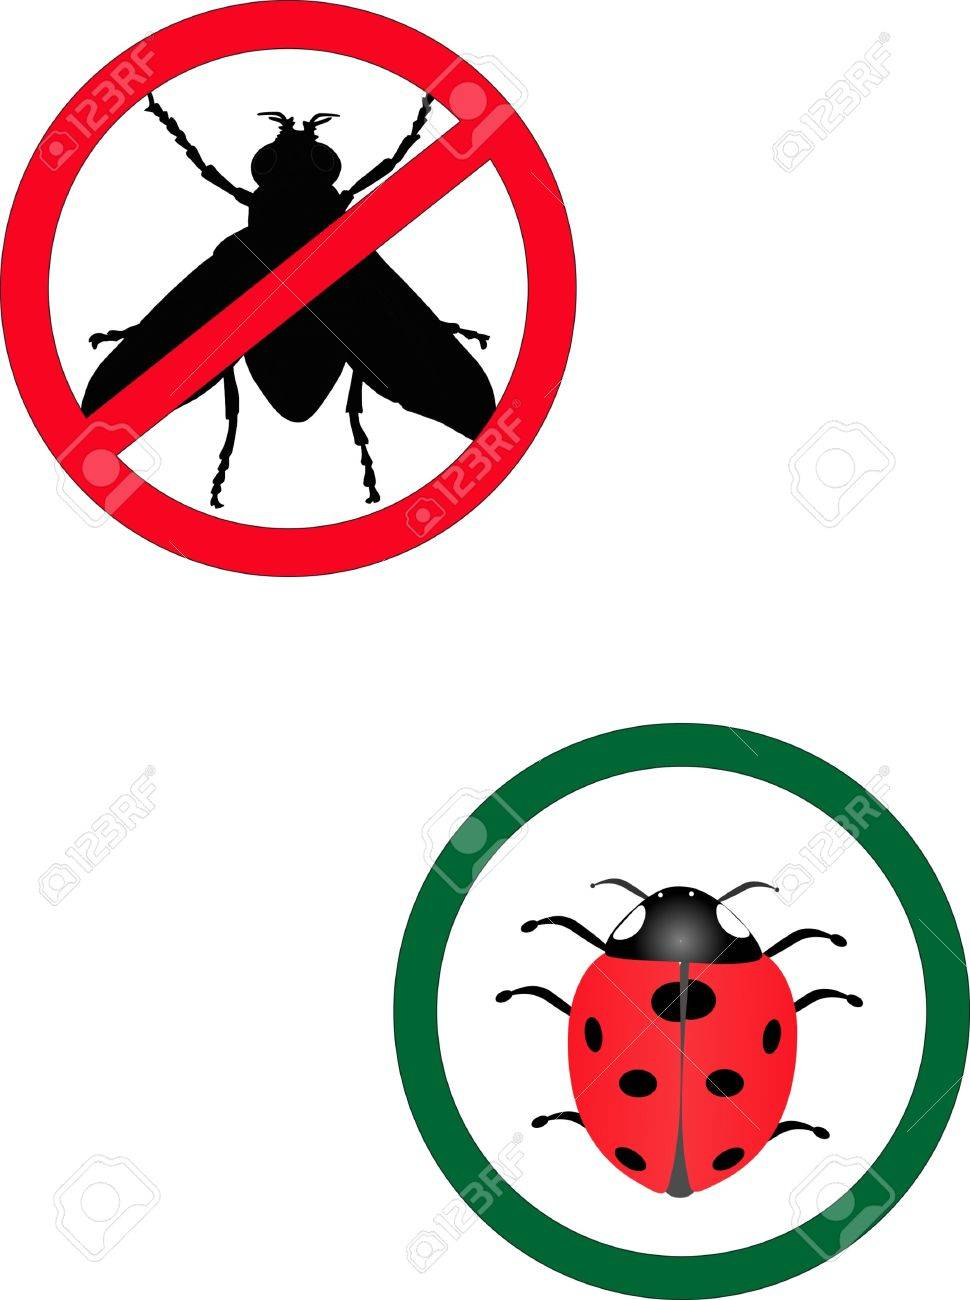 No Flies allowed and Lady bugs allowed signs Stock Vector - 4558378